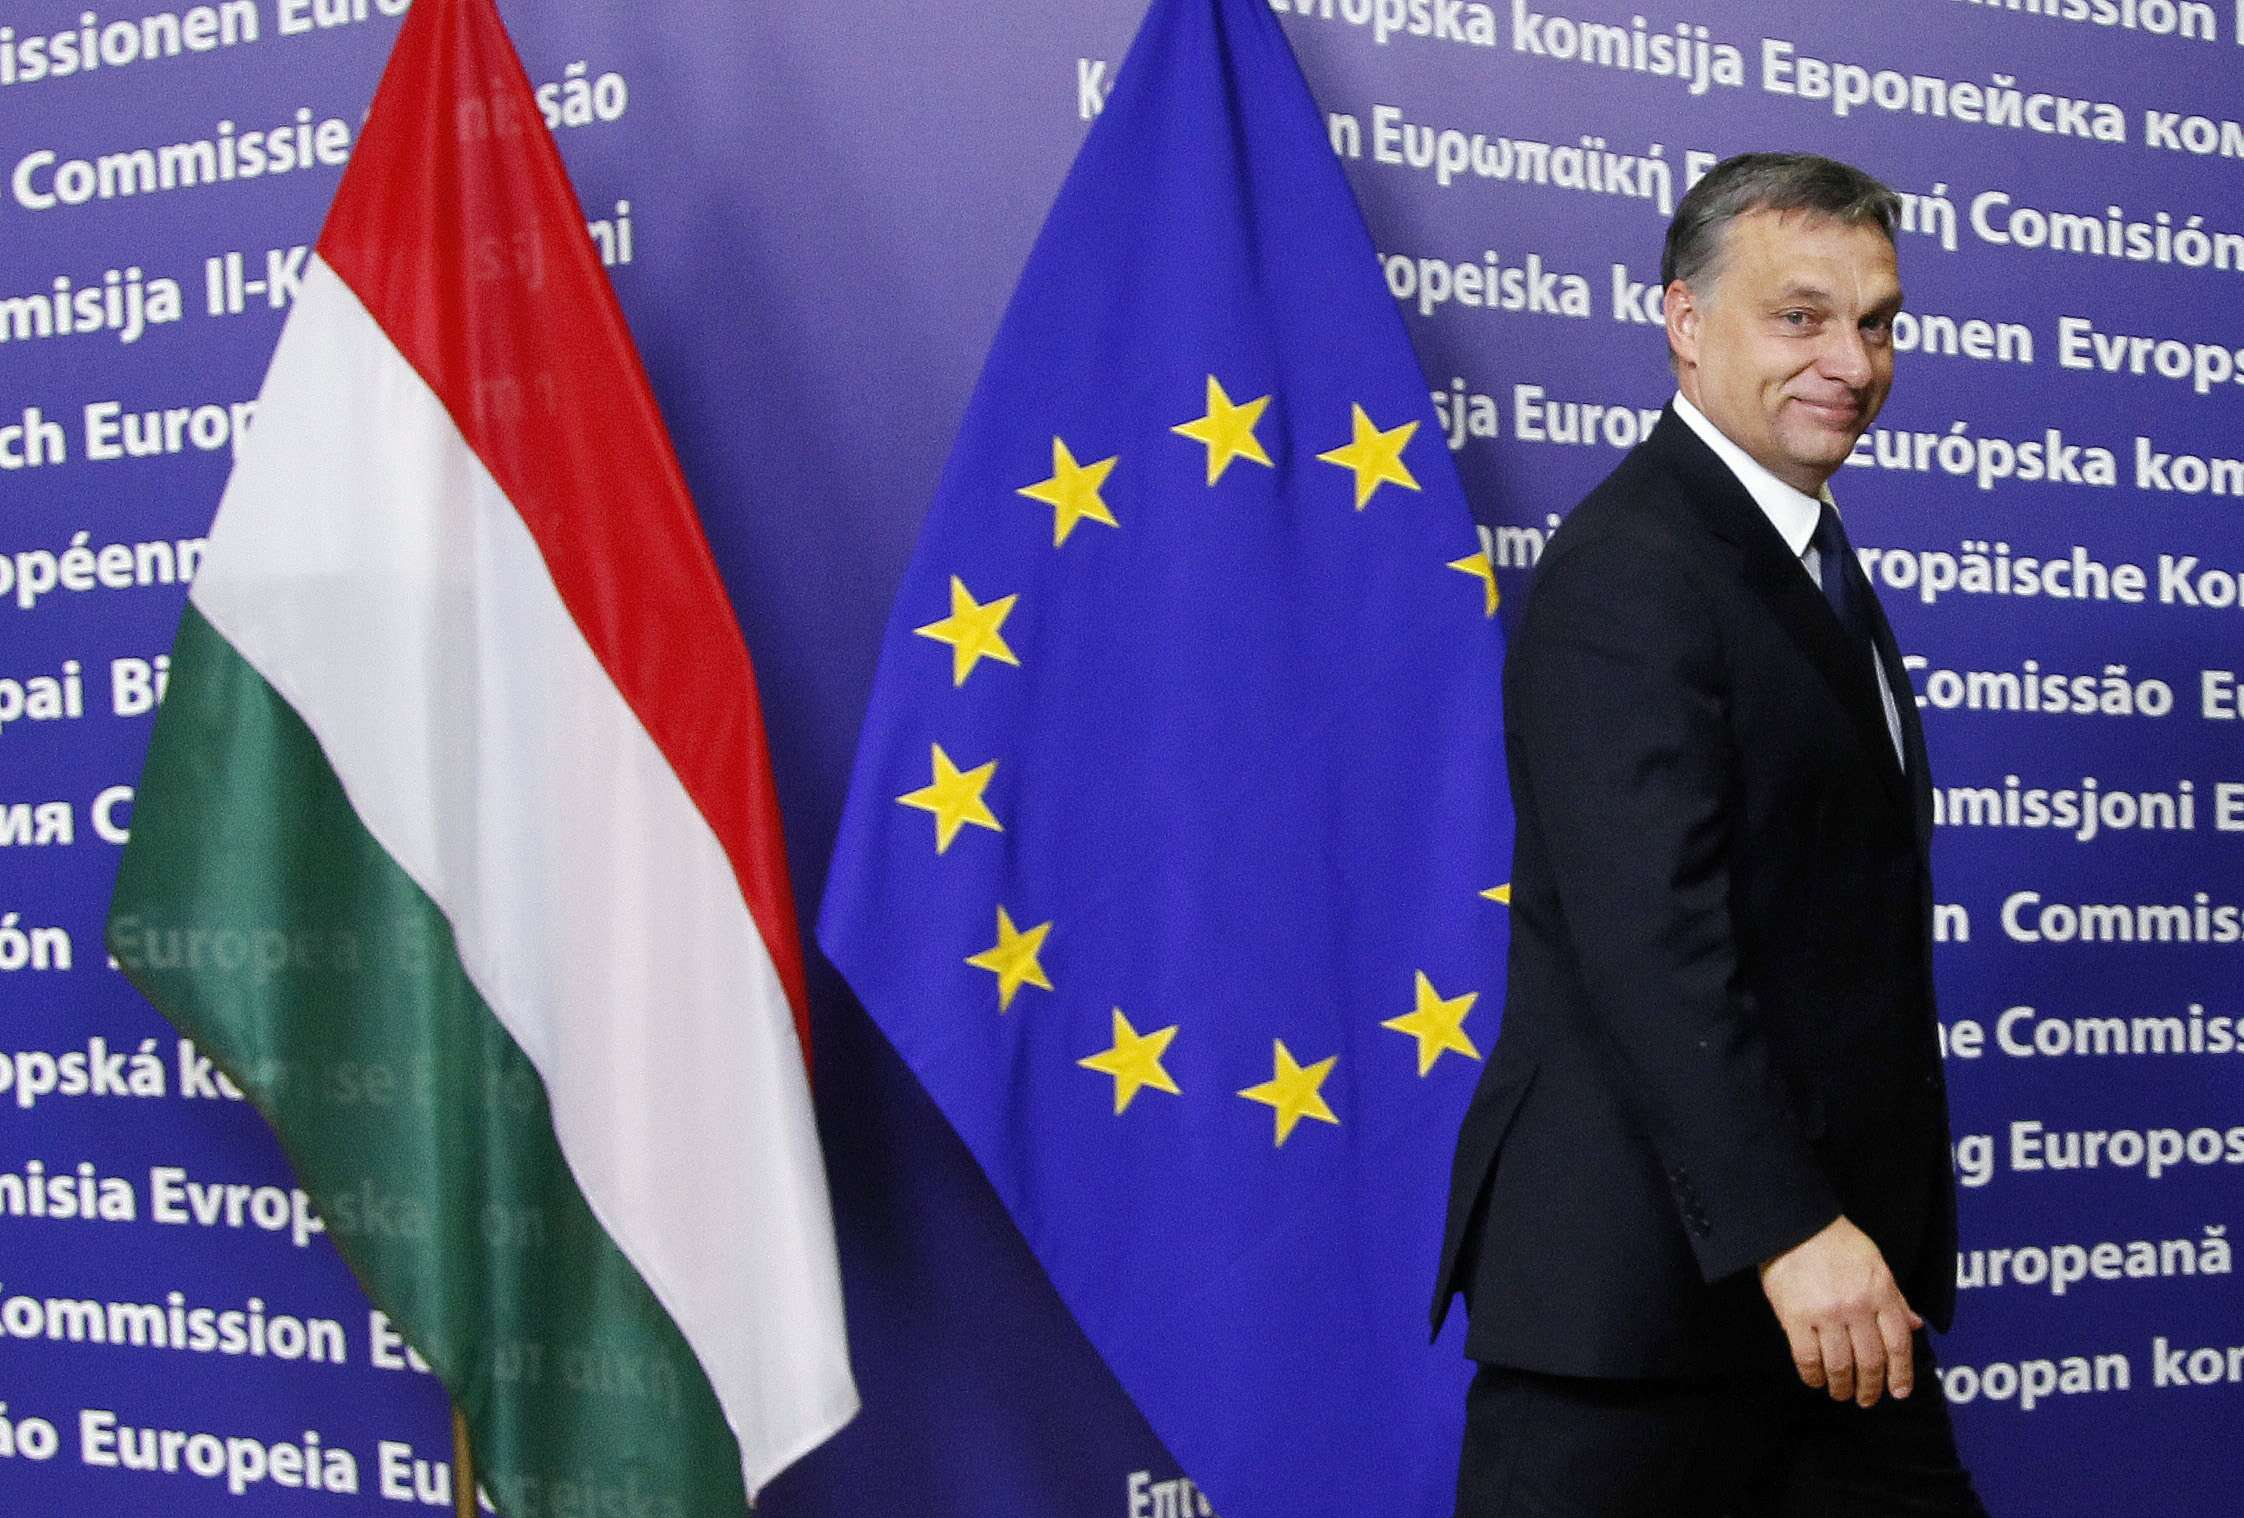 #FactOfTheDay 26/06/2018 – MEPs call on Parliament to trigger Article 7 disciplinary procedure against Hungary